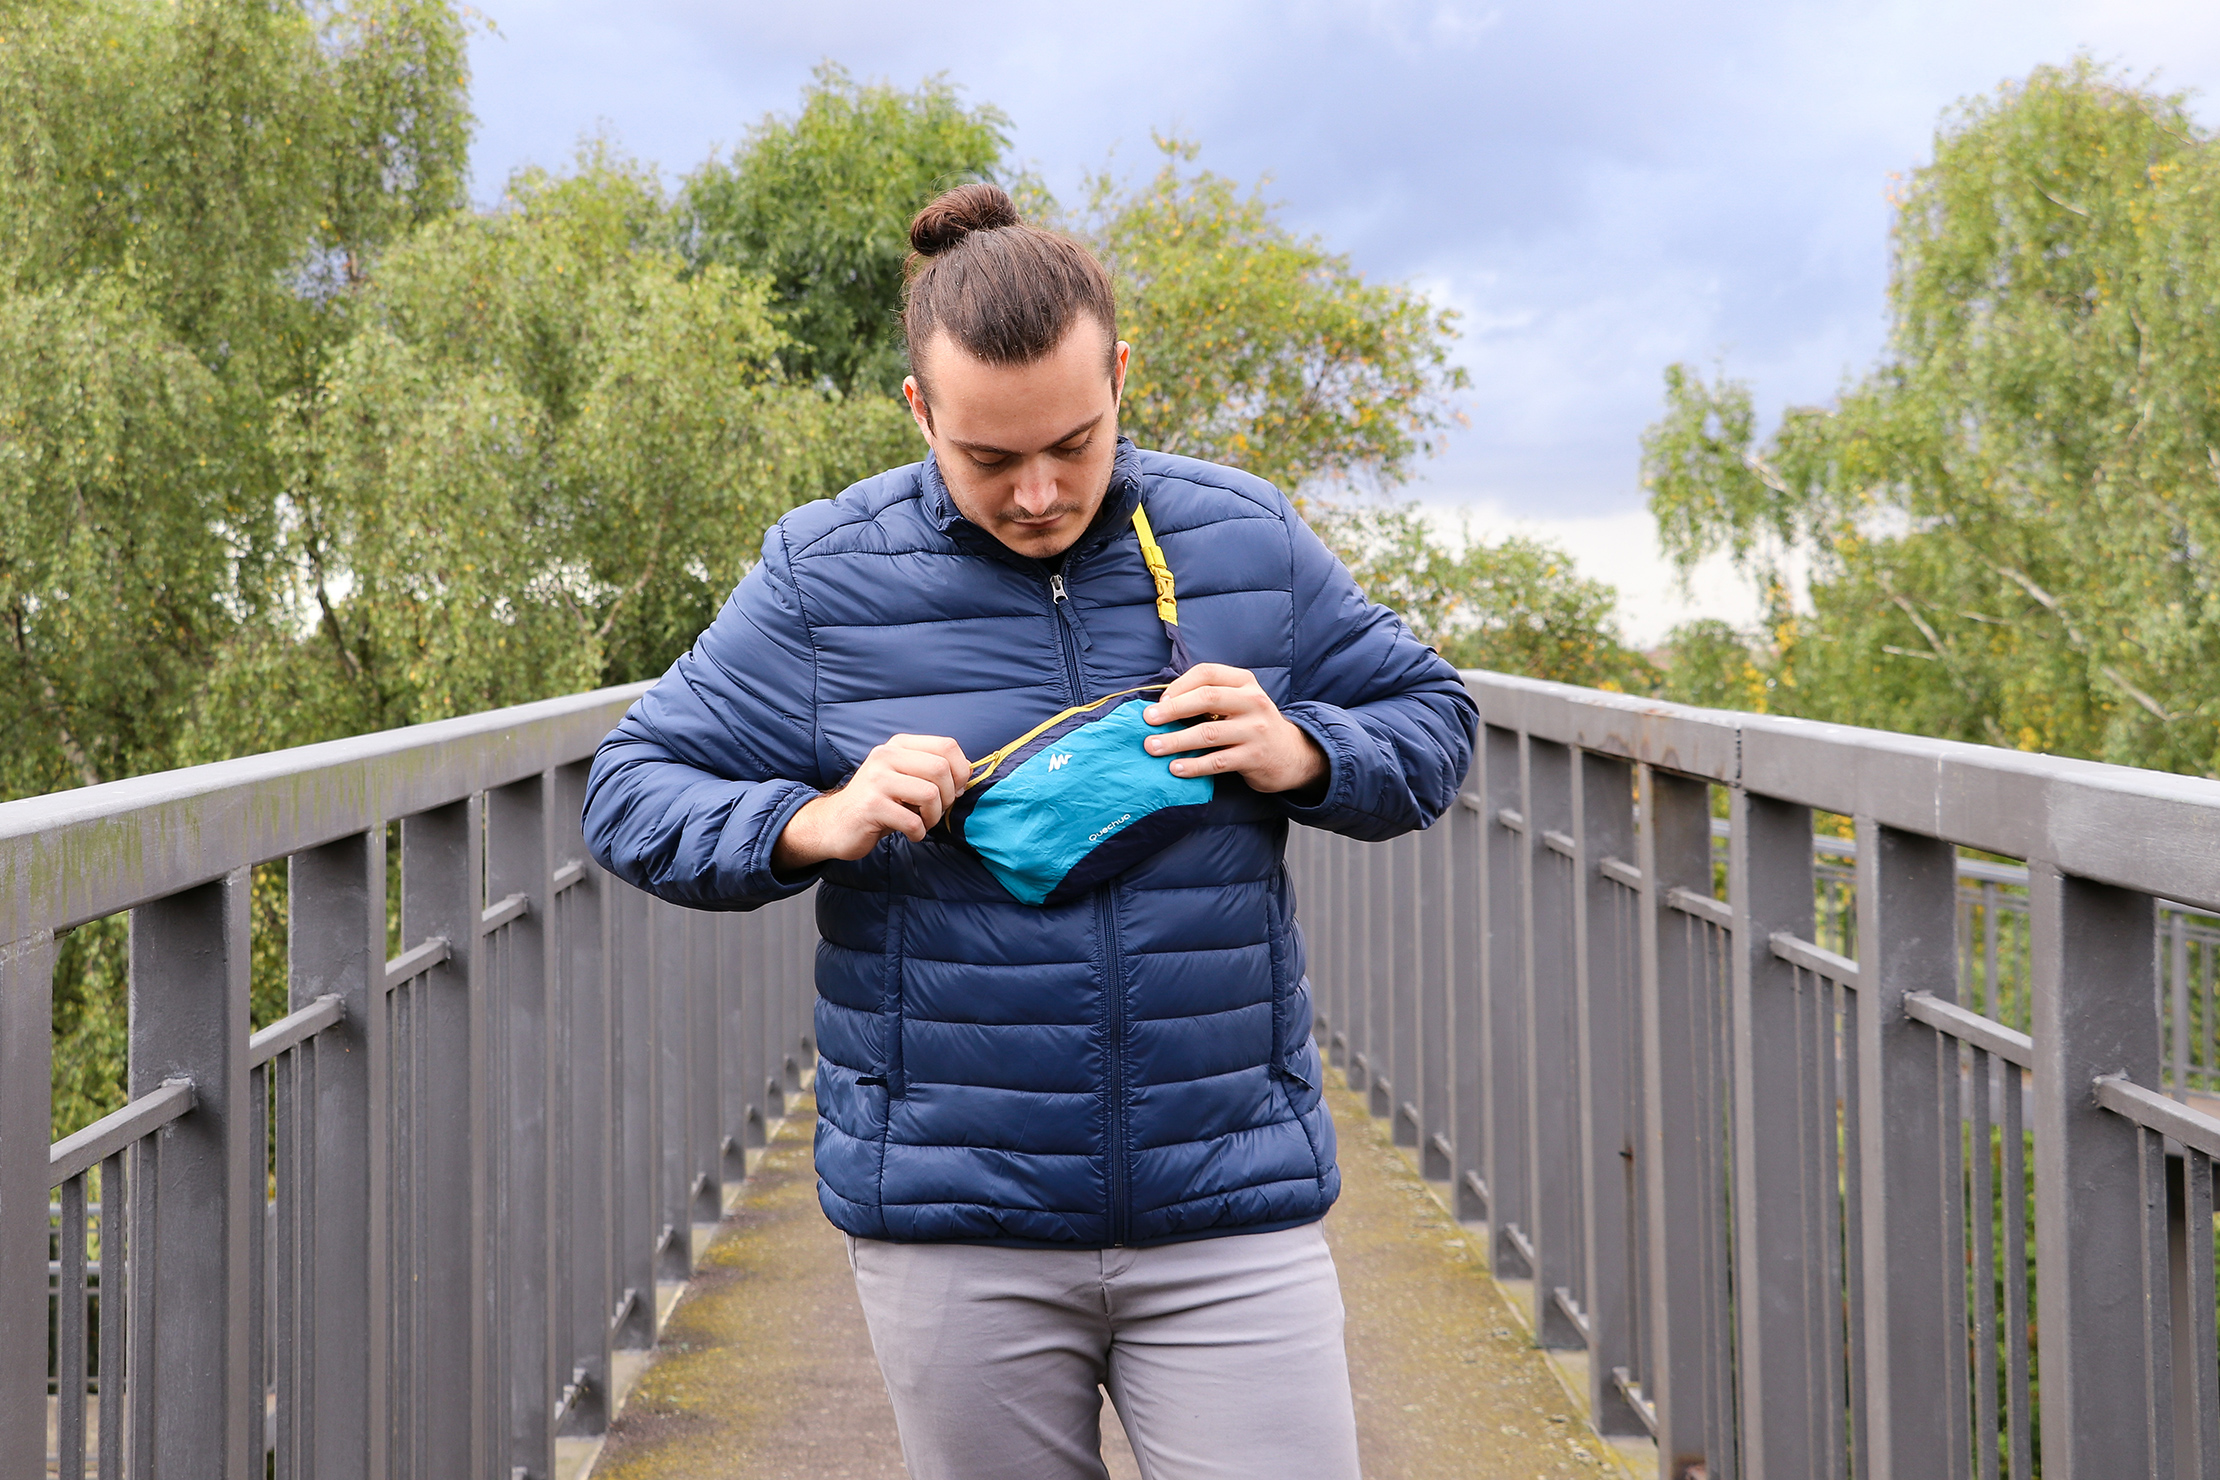 Quechua Ultra-Compact Travel Waist Pack In Essex, England